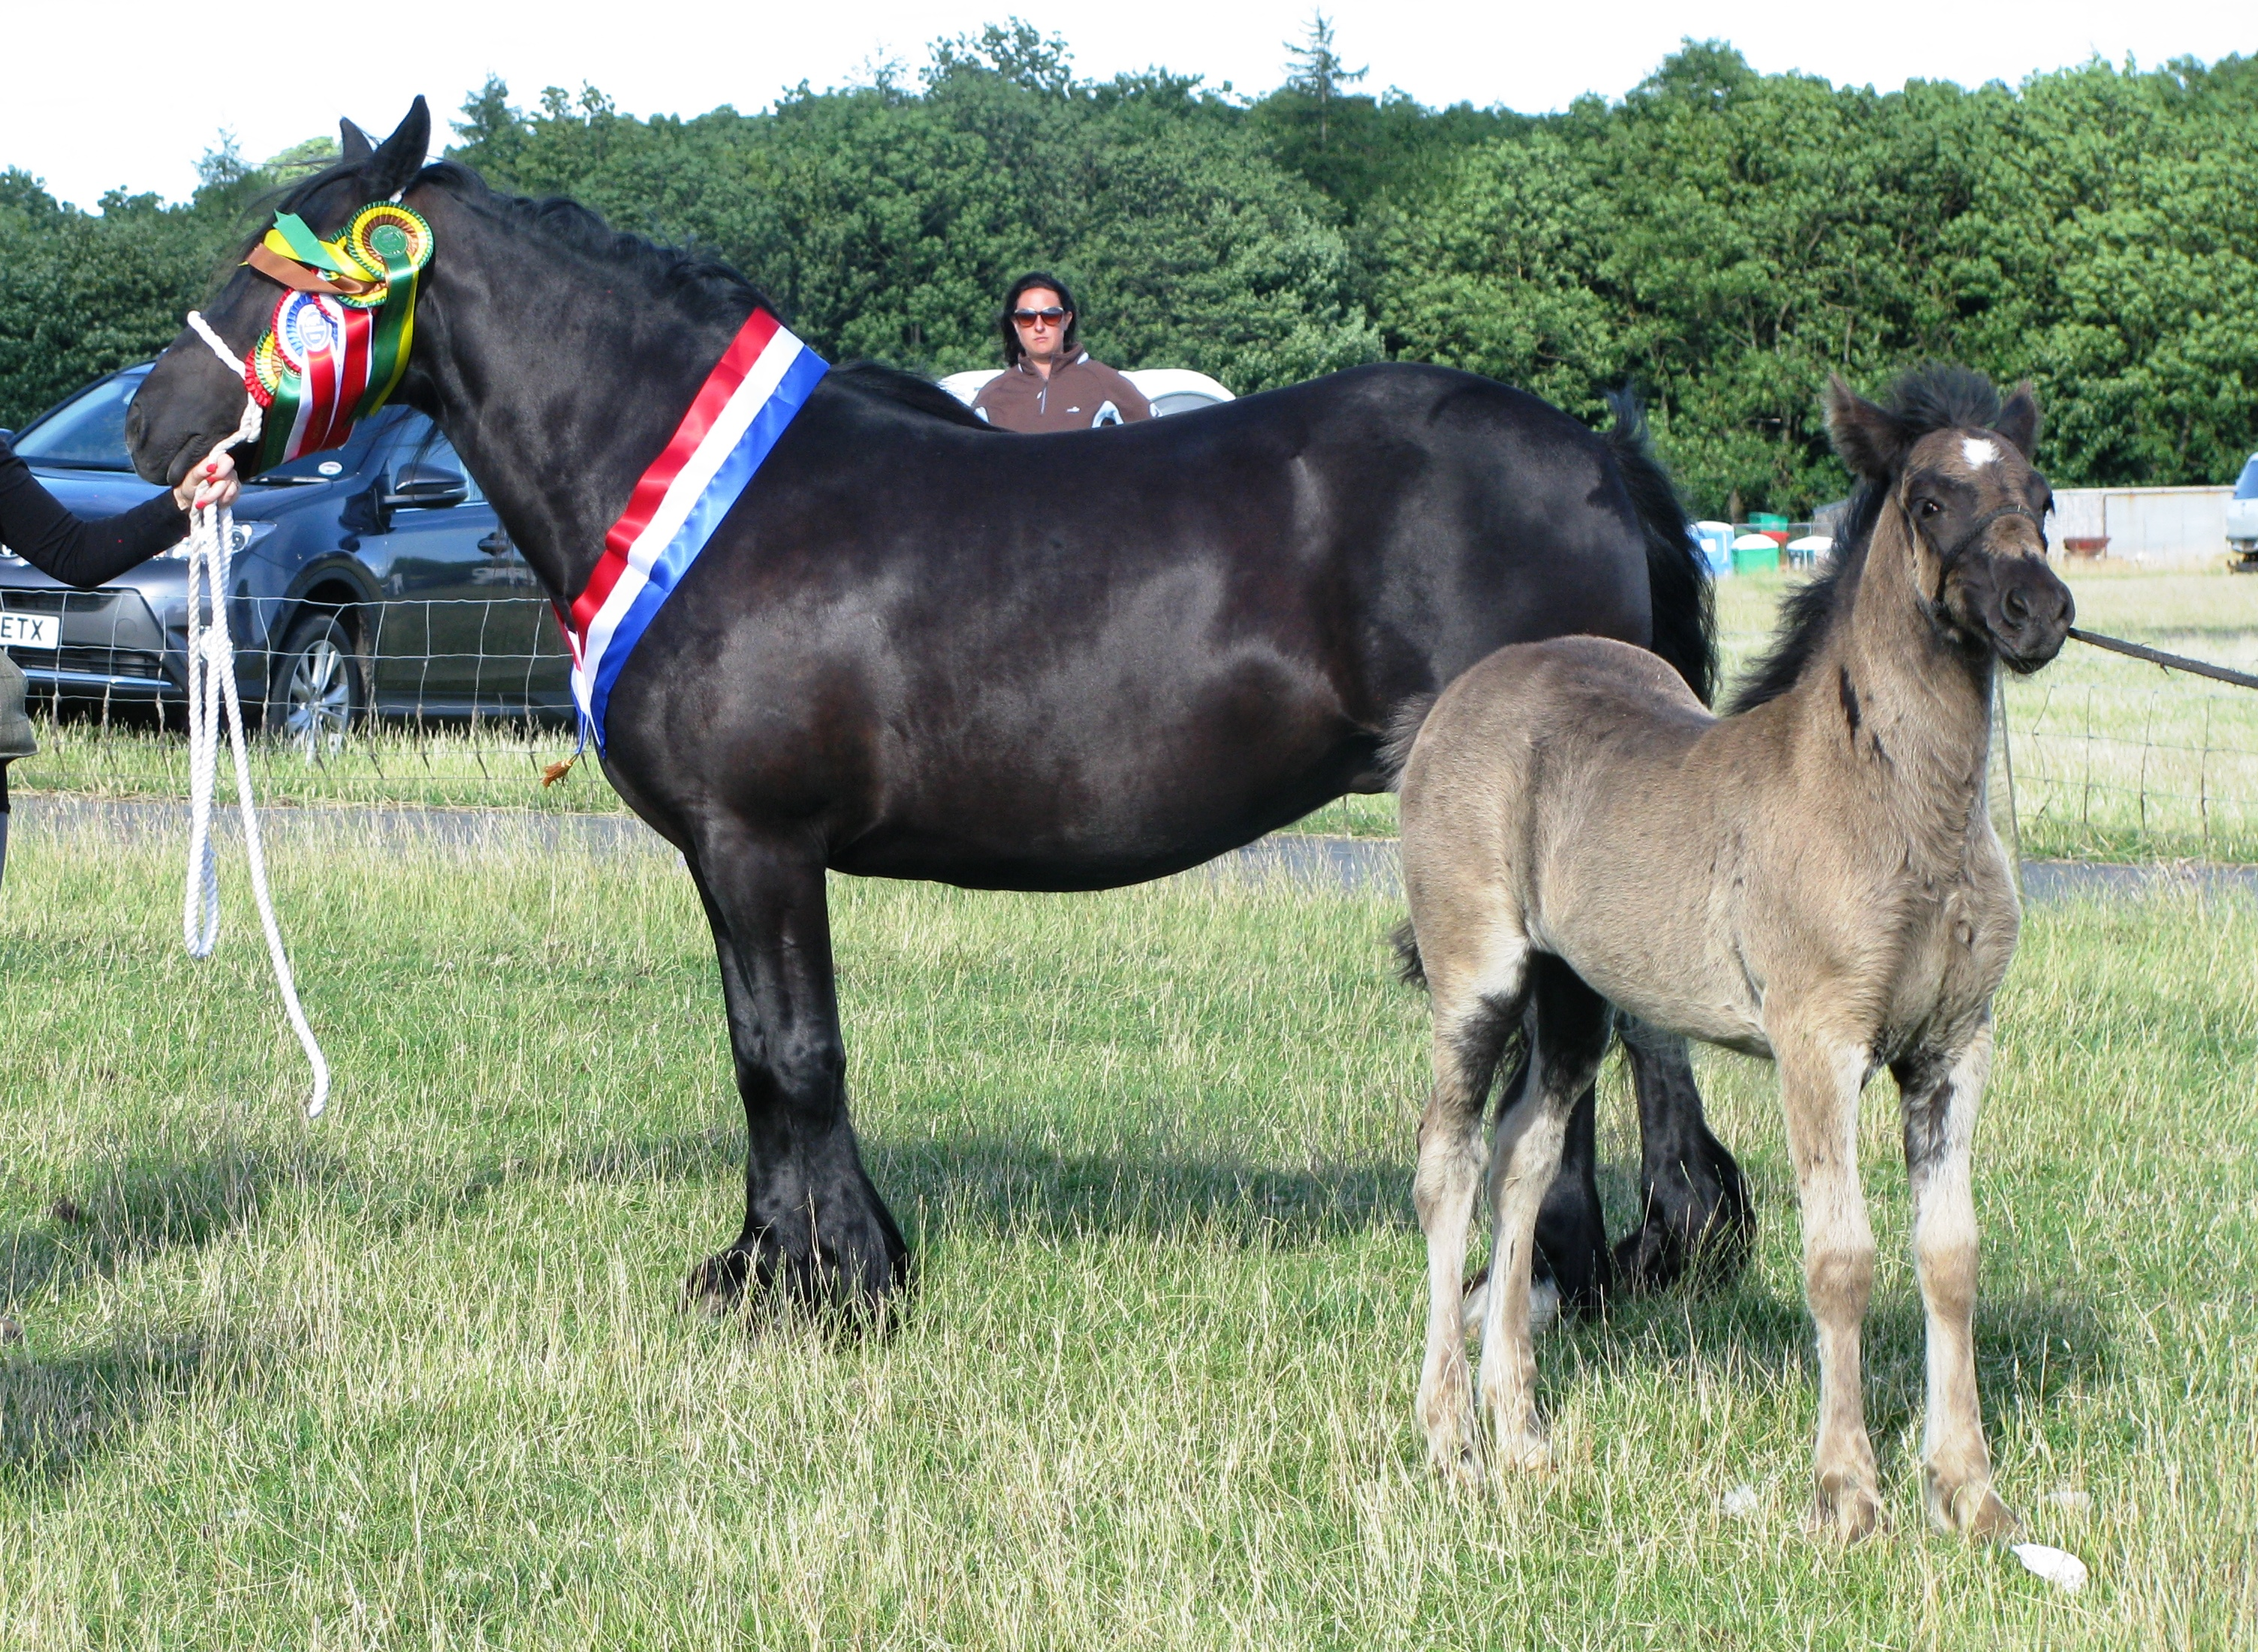 history and overview of the horse breeds history essay Horse is a majestic animal which has been domesticated more than 7000 years ago and has spread all over the word during the last 5000 years.